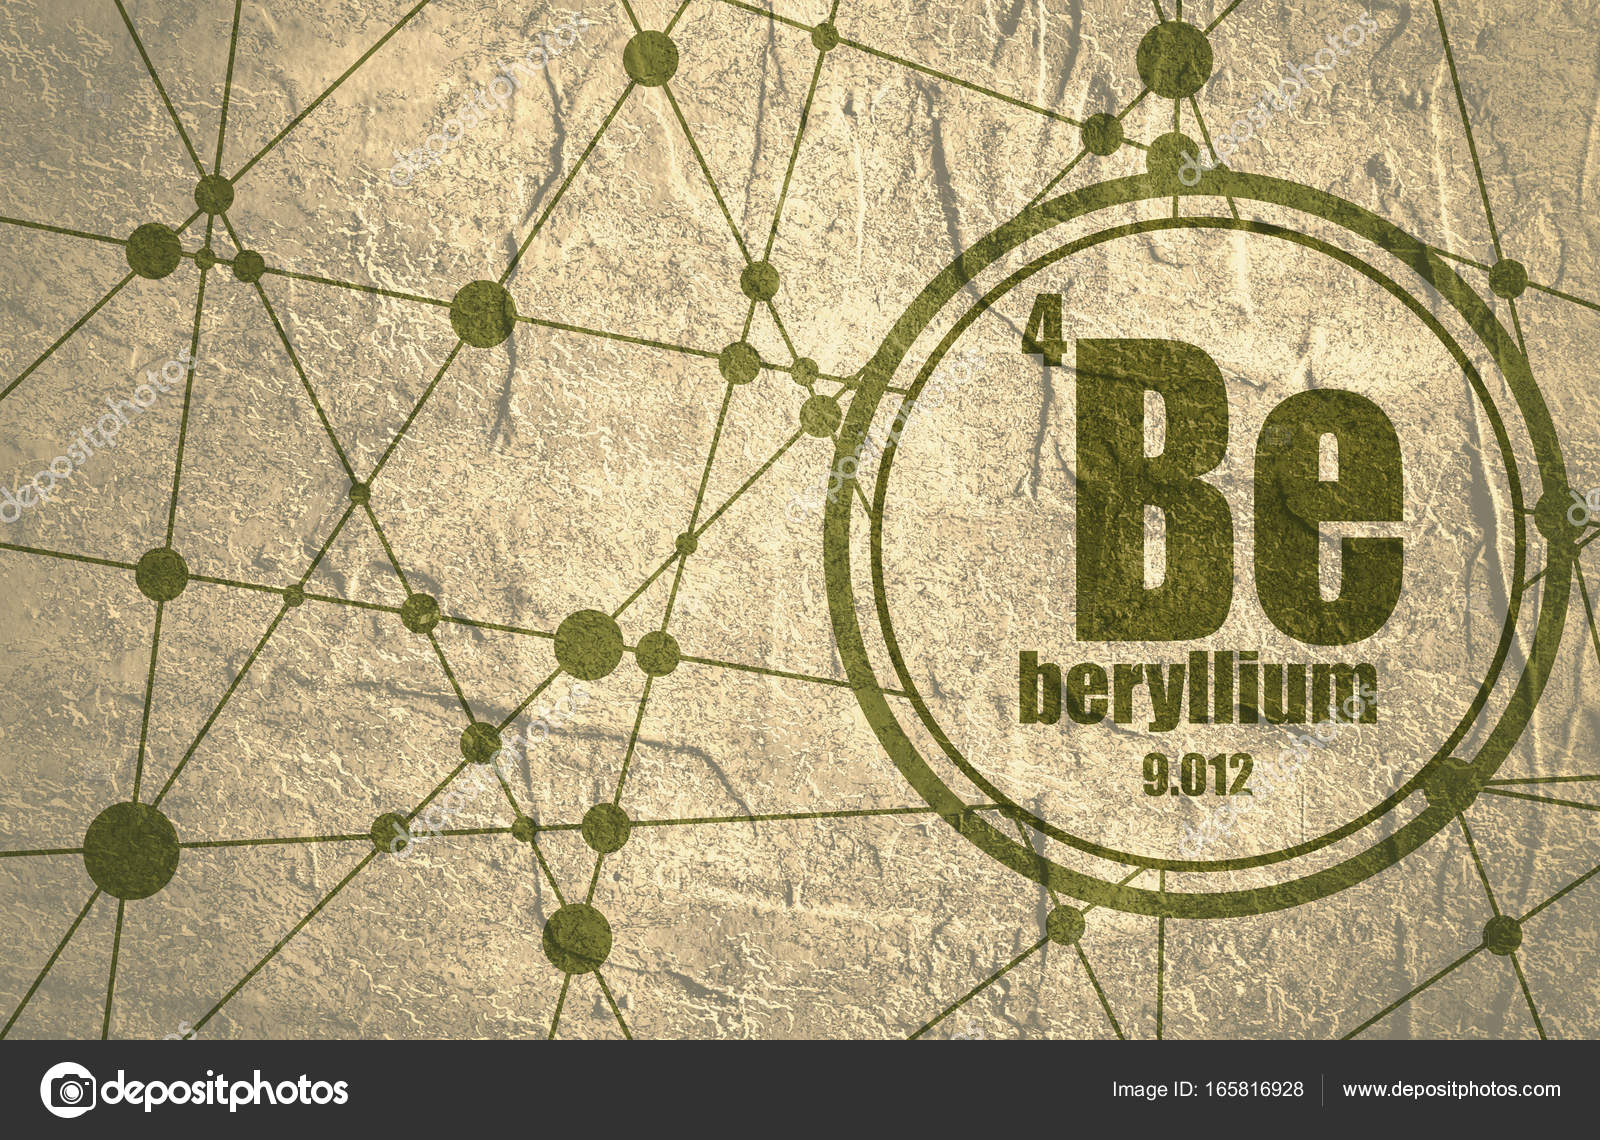 Beryllium chemical element stock photo jegasra 165816928 beryllium chemical element sign with atomic number and atomic weight chemical element of periodic table molecule and communication background buycottarizona Image collections